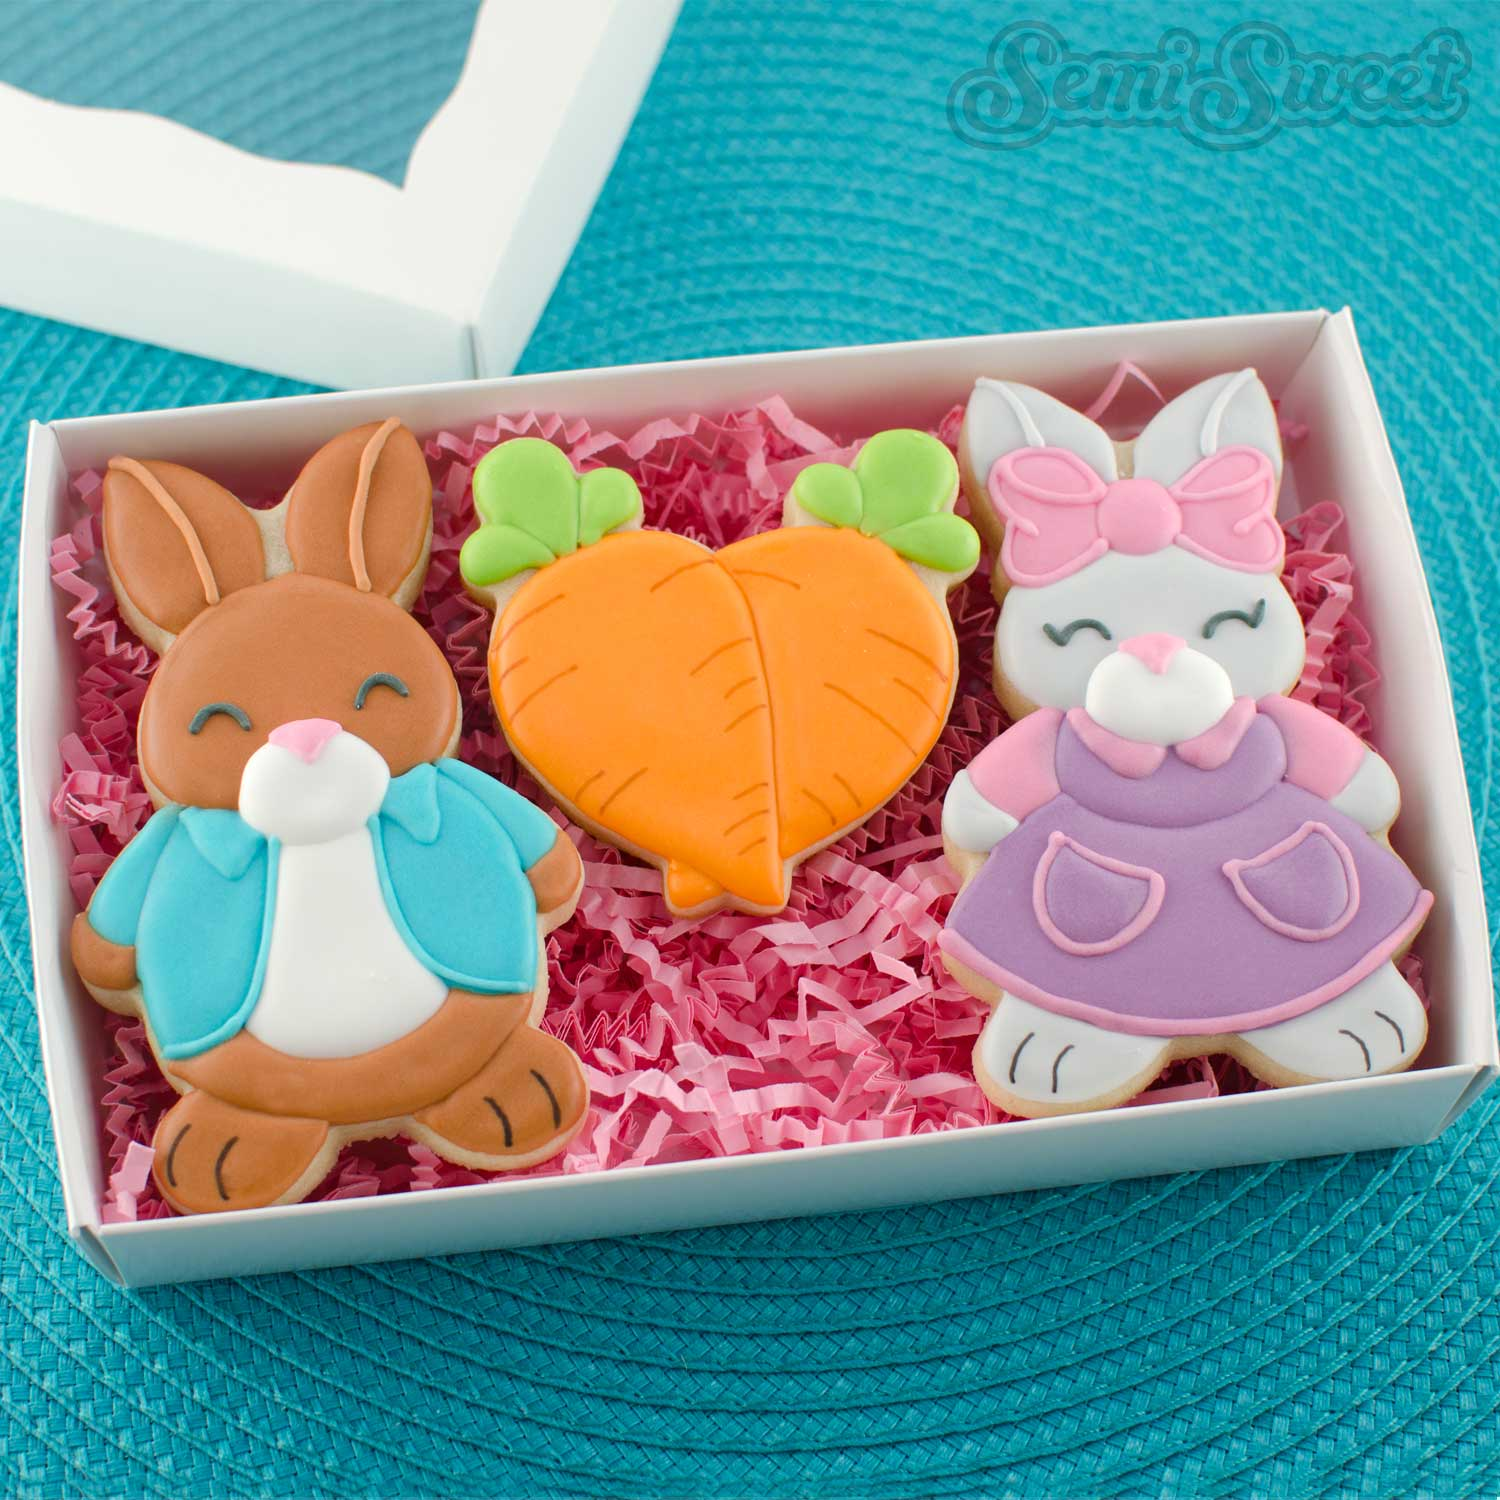 How to Make Peter Rabbit Inspired Cookies